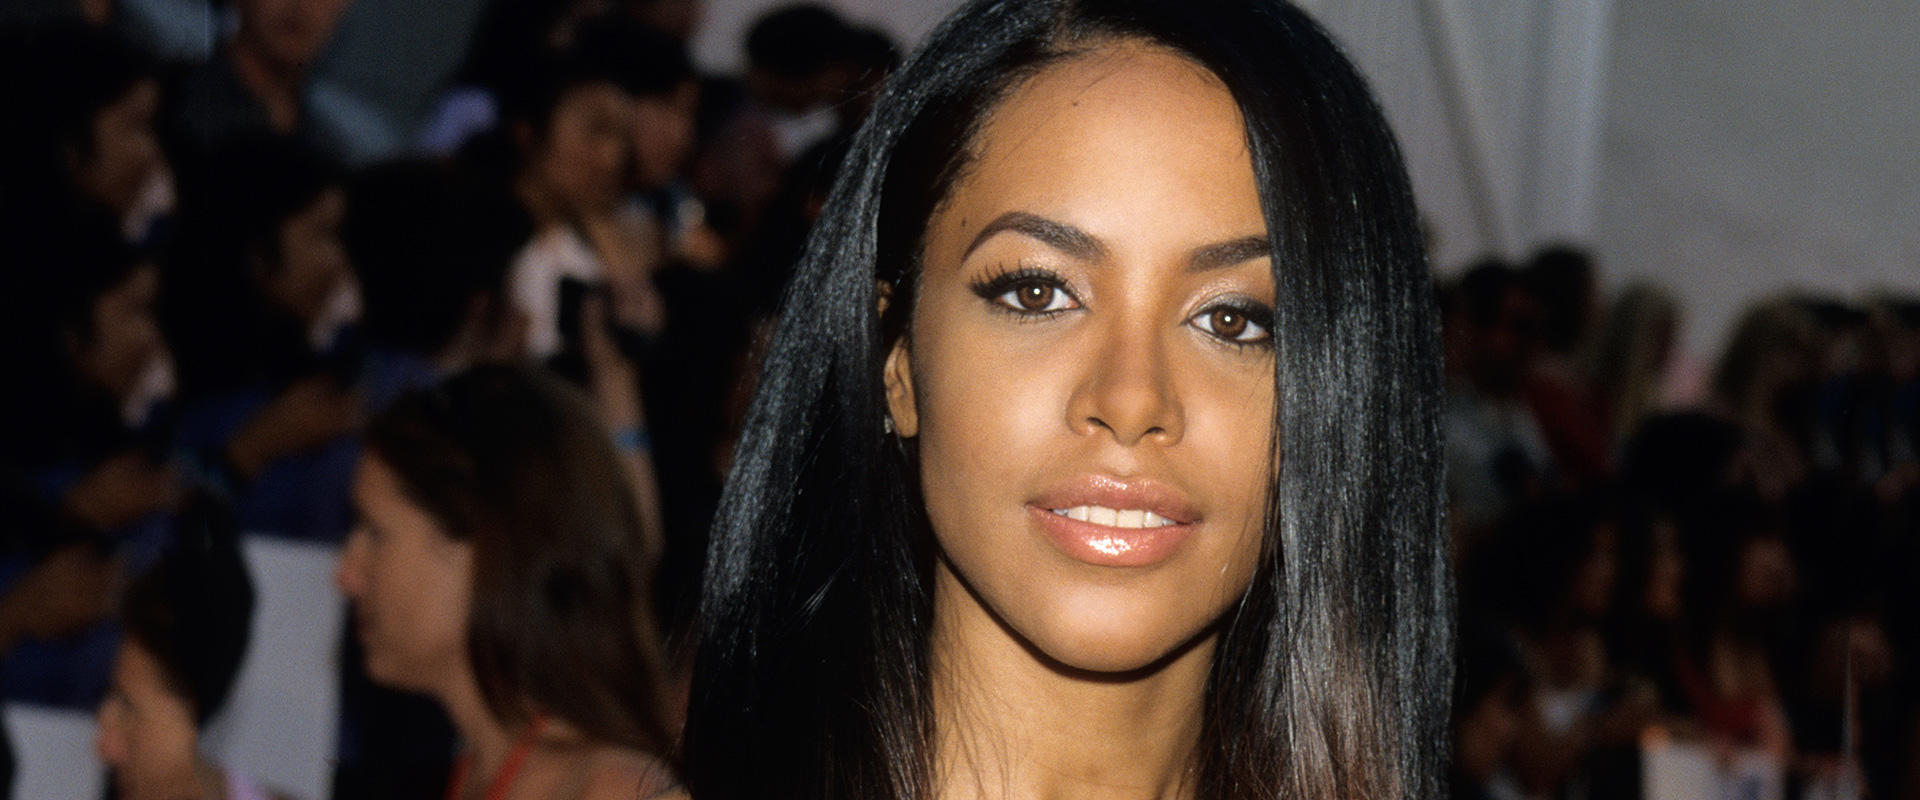 Aaliyah Remembered on What Would Have Been Her 39th Birthday